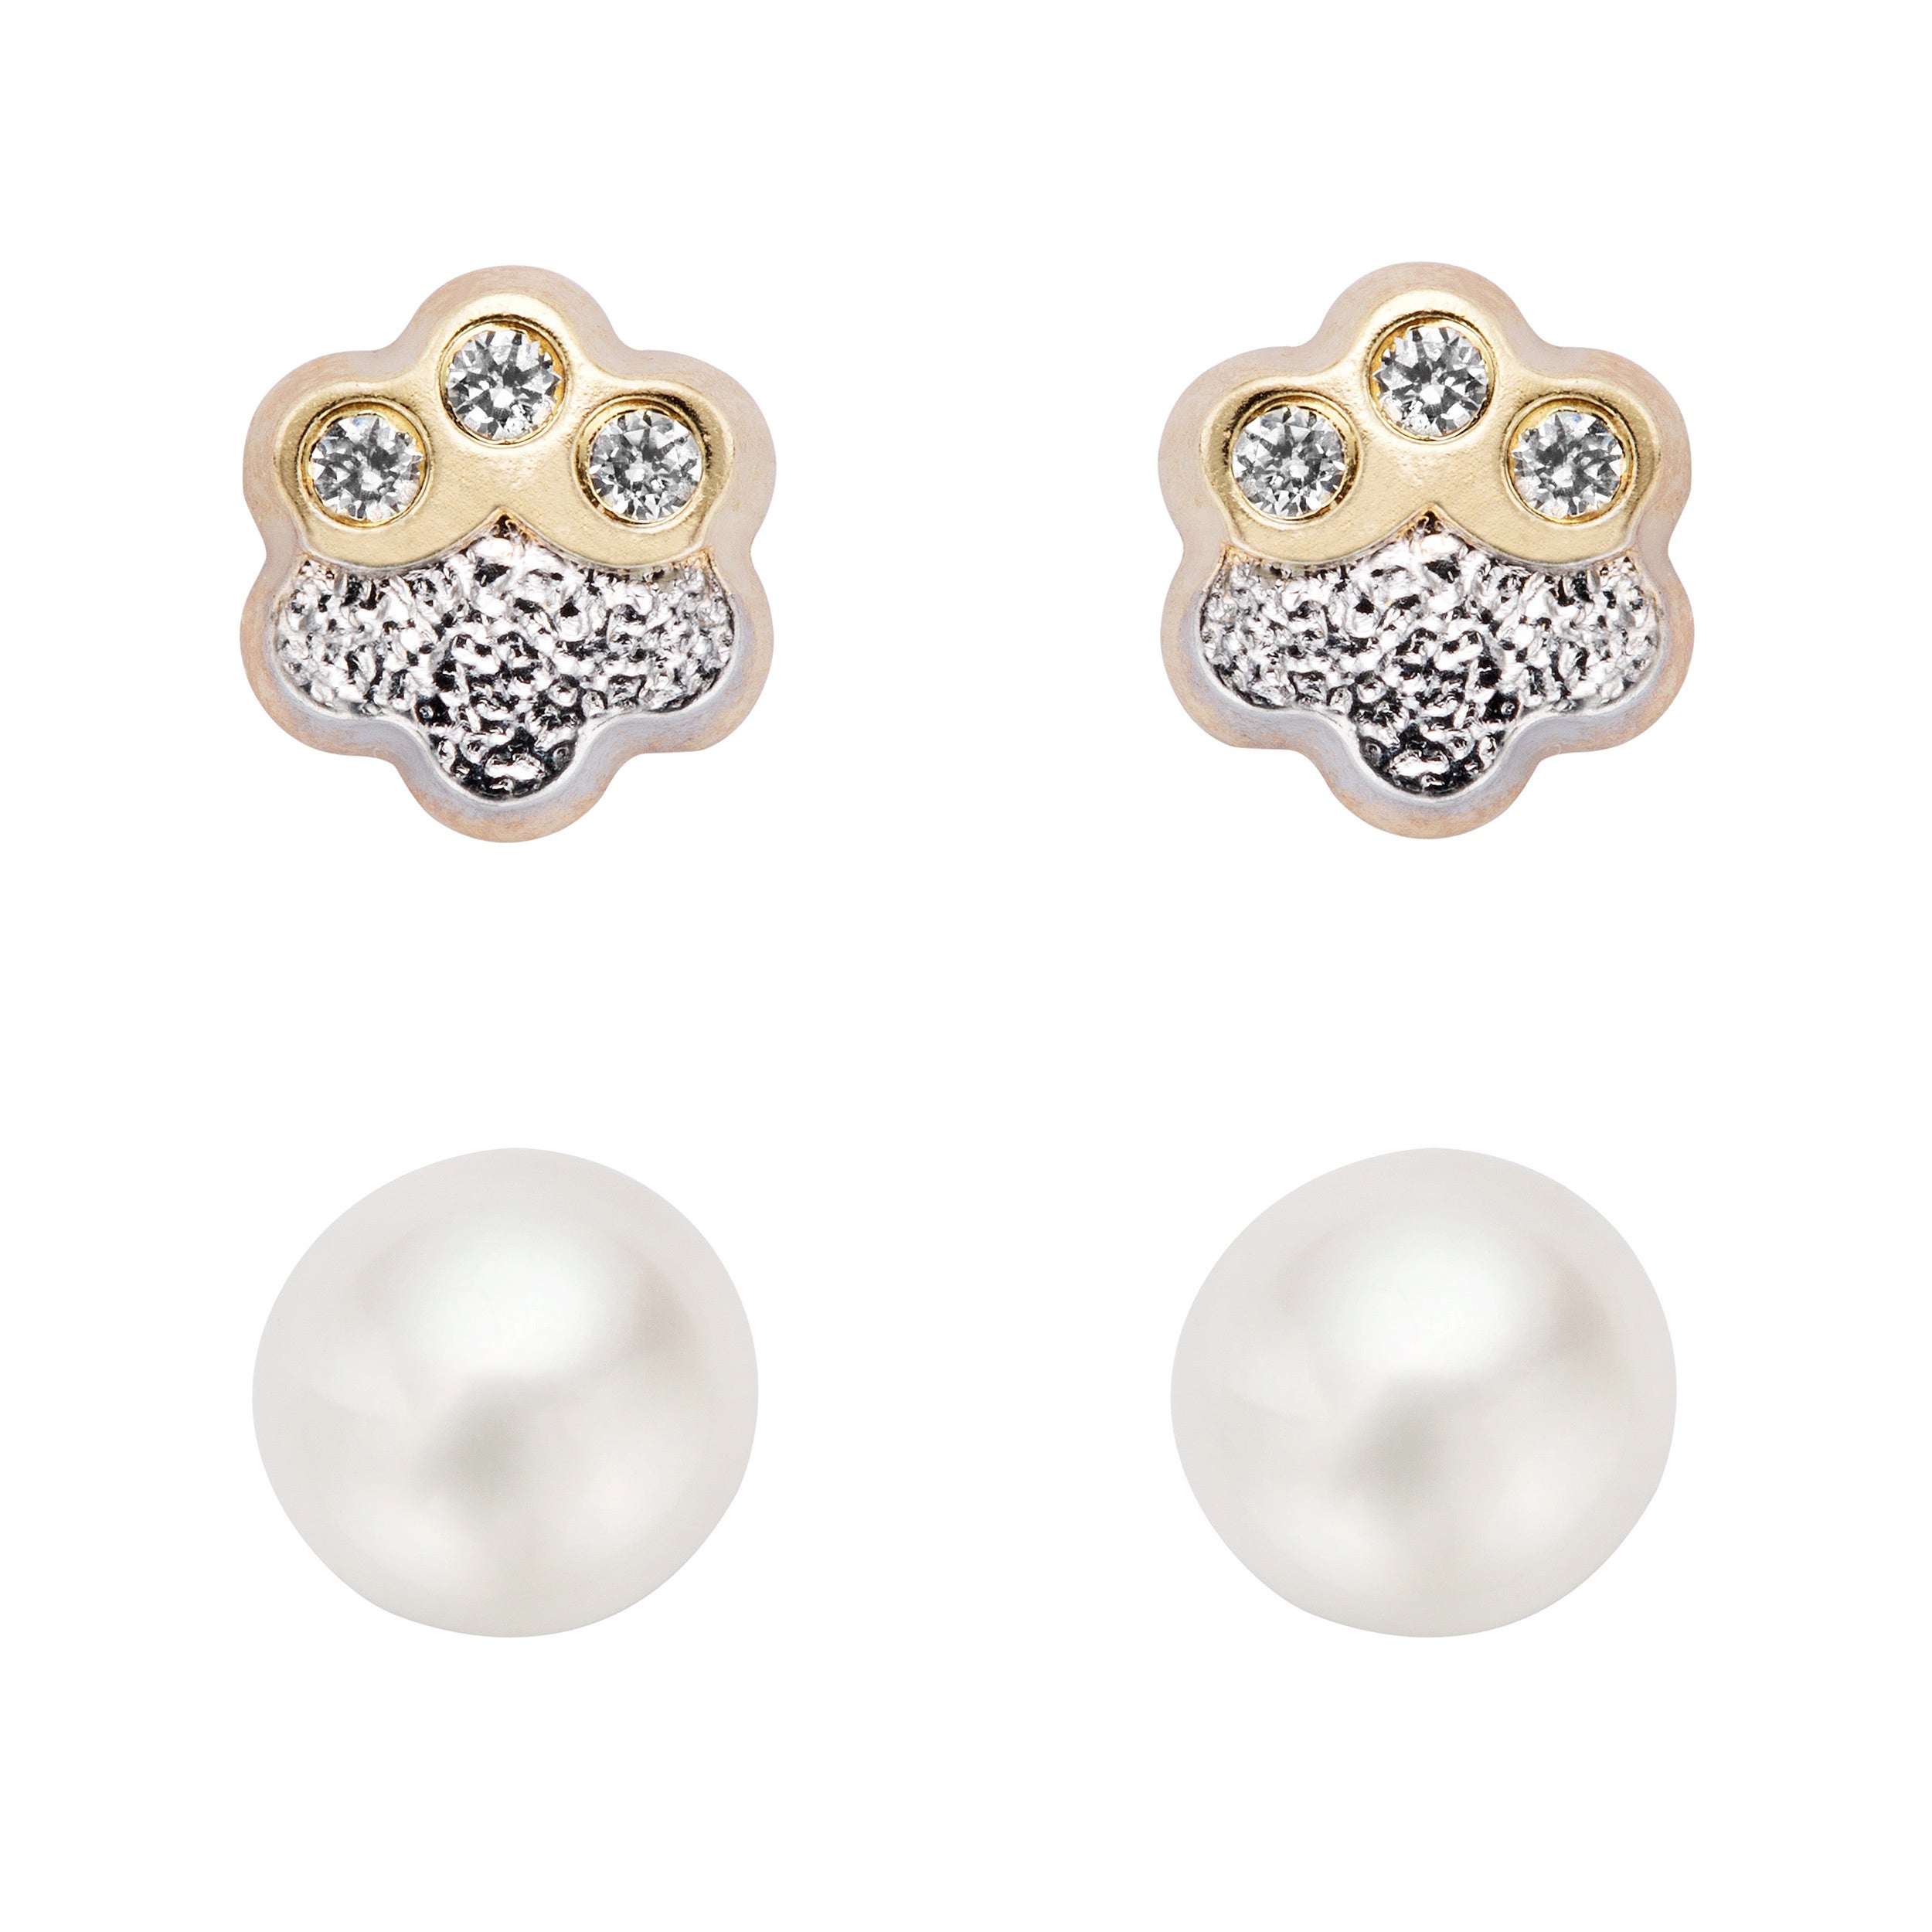 Pearlyta 14k Gold White Pearl and Cubic Zirconia Flower Stud Earring Set (4-5 mm) with Gift Box at Sears.com